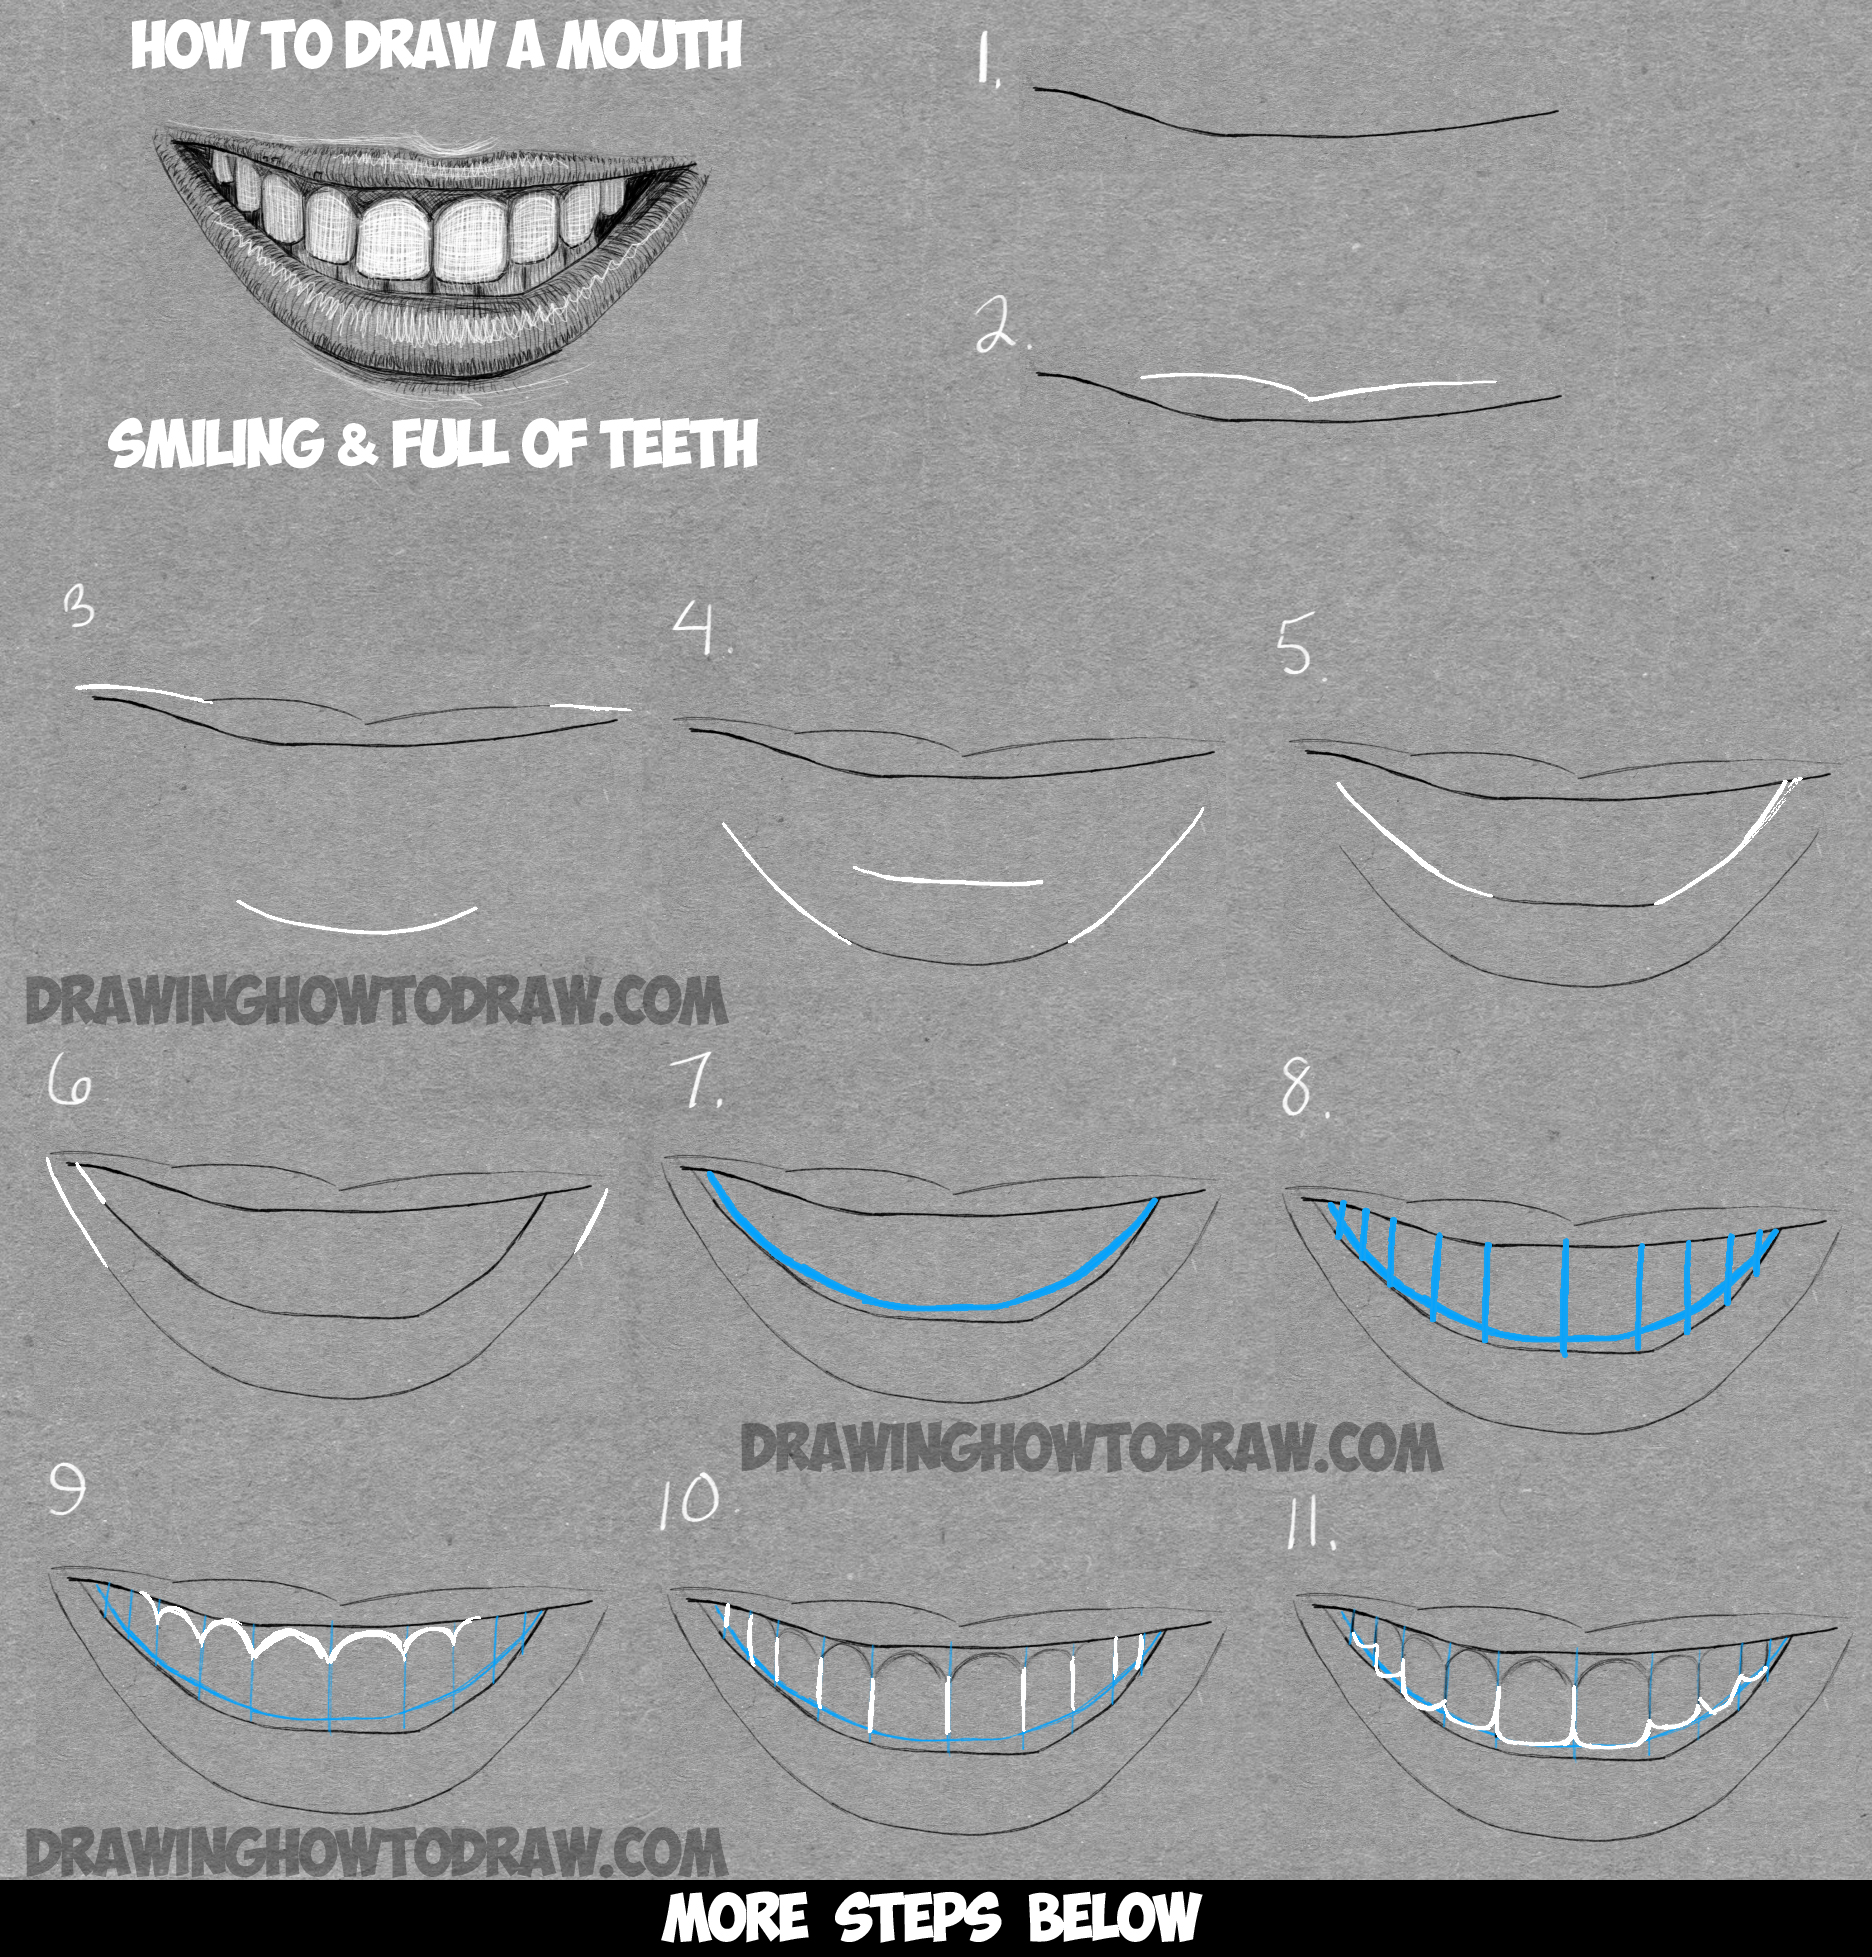 How To Draw A Mouth Full Of Teeth Drawing A Smiling Mouth And